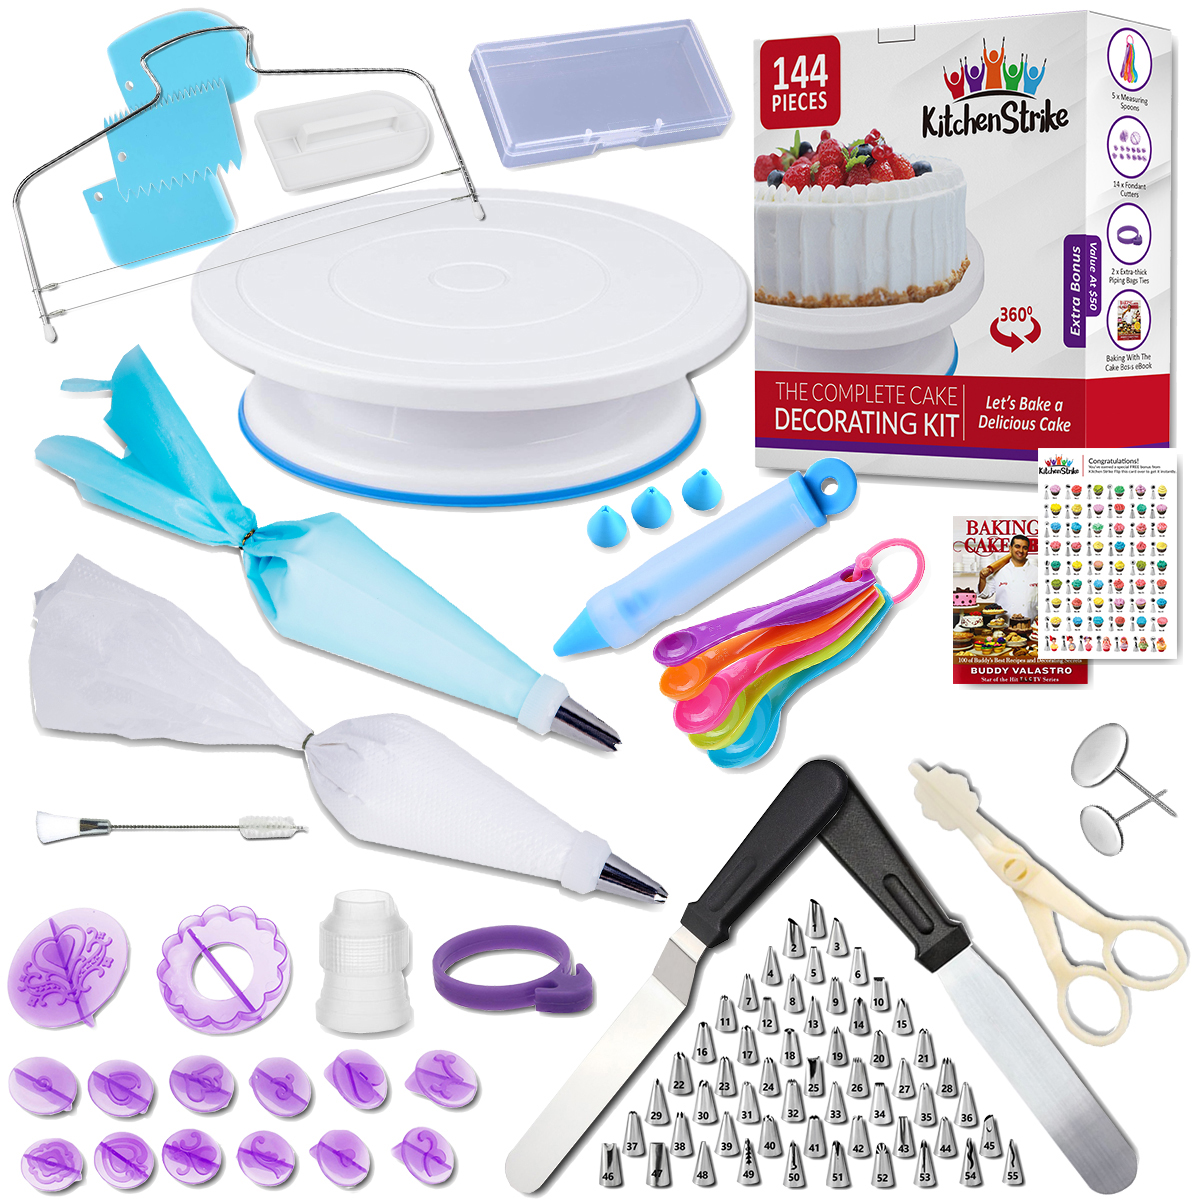 The Complete Cake Decorating Kit